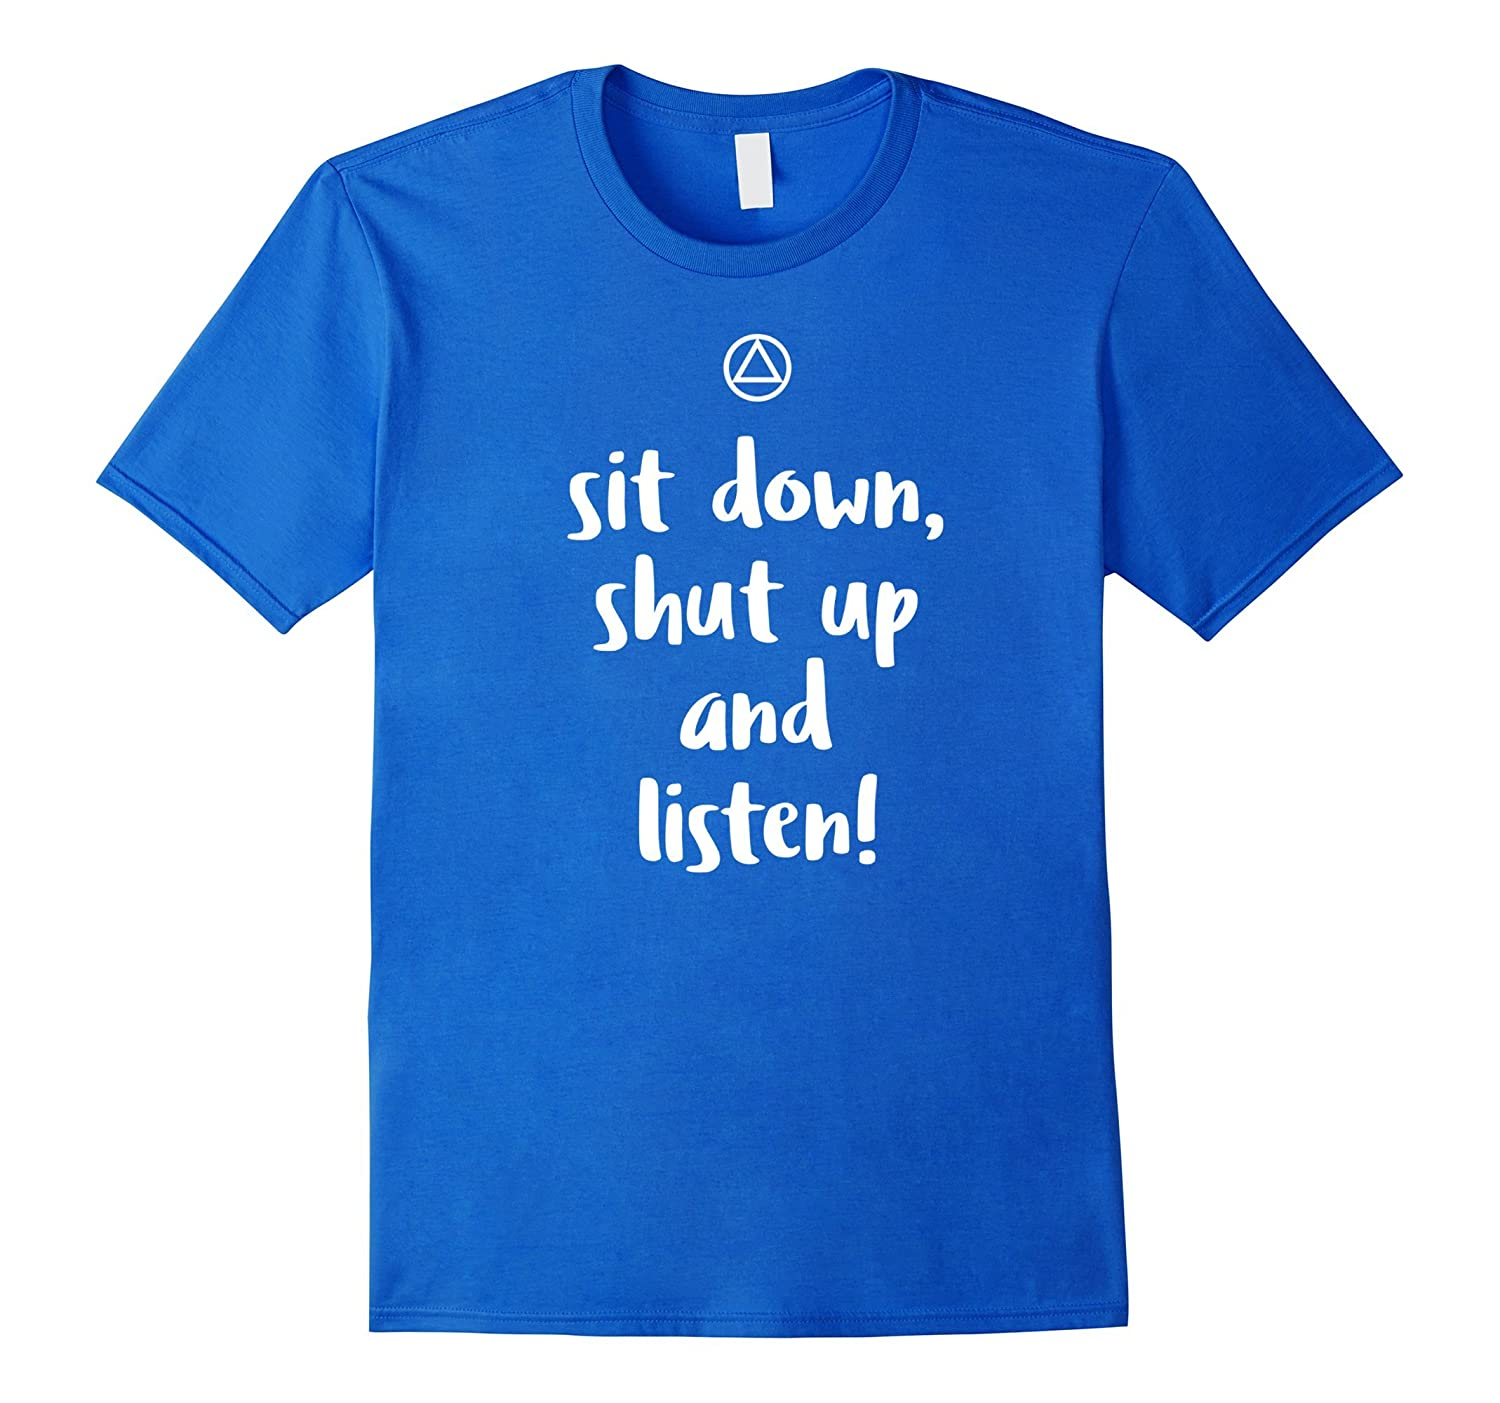 'Sit Down, Shut Up And Listen' – Funny AA Recovery T-Shirt